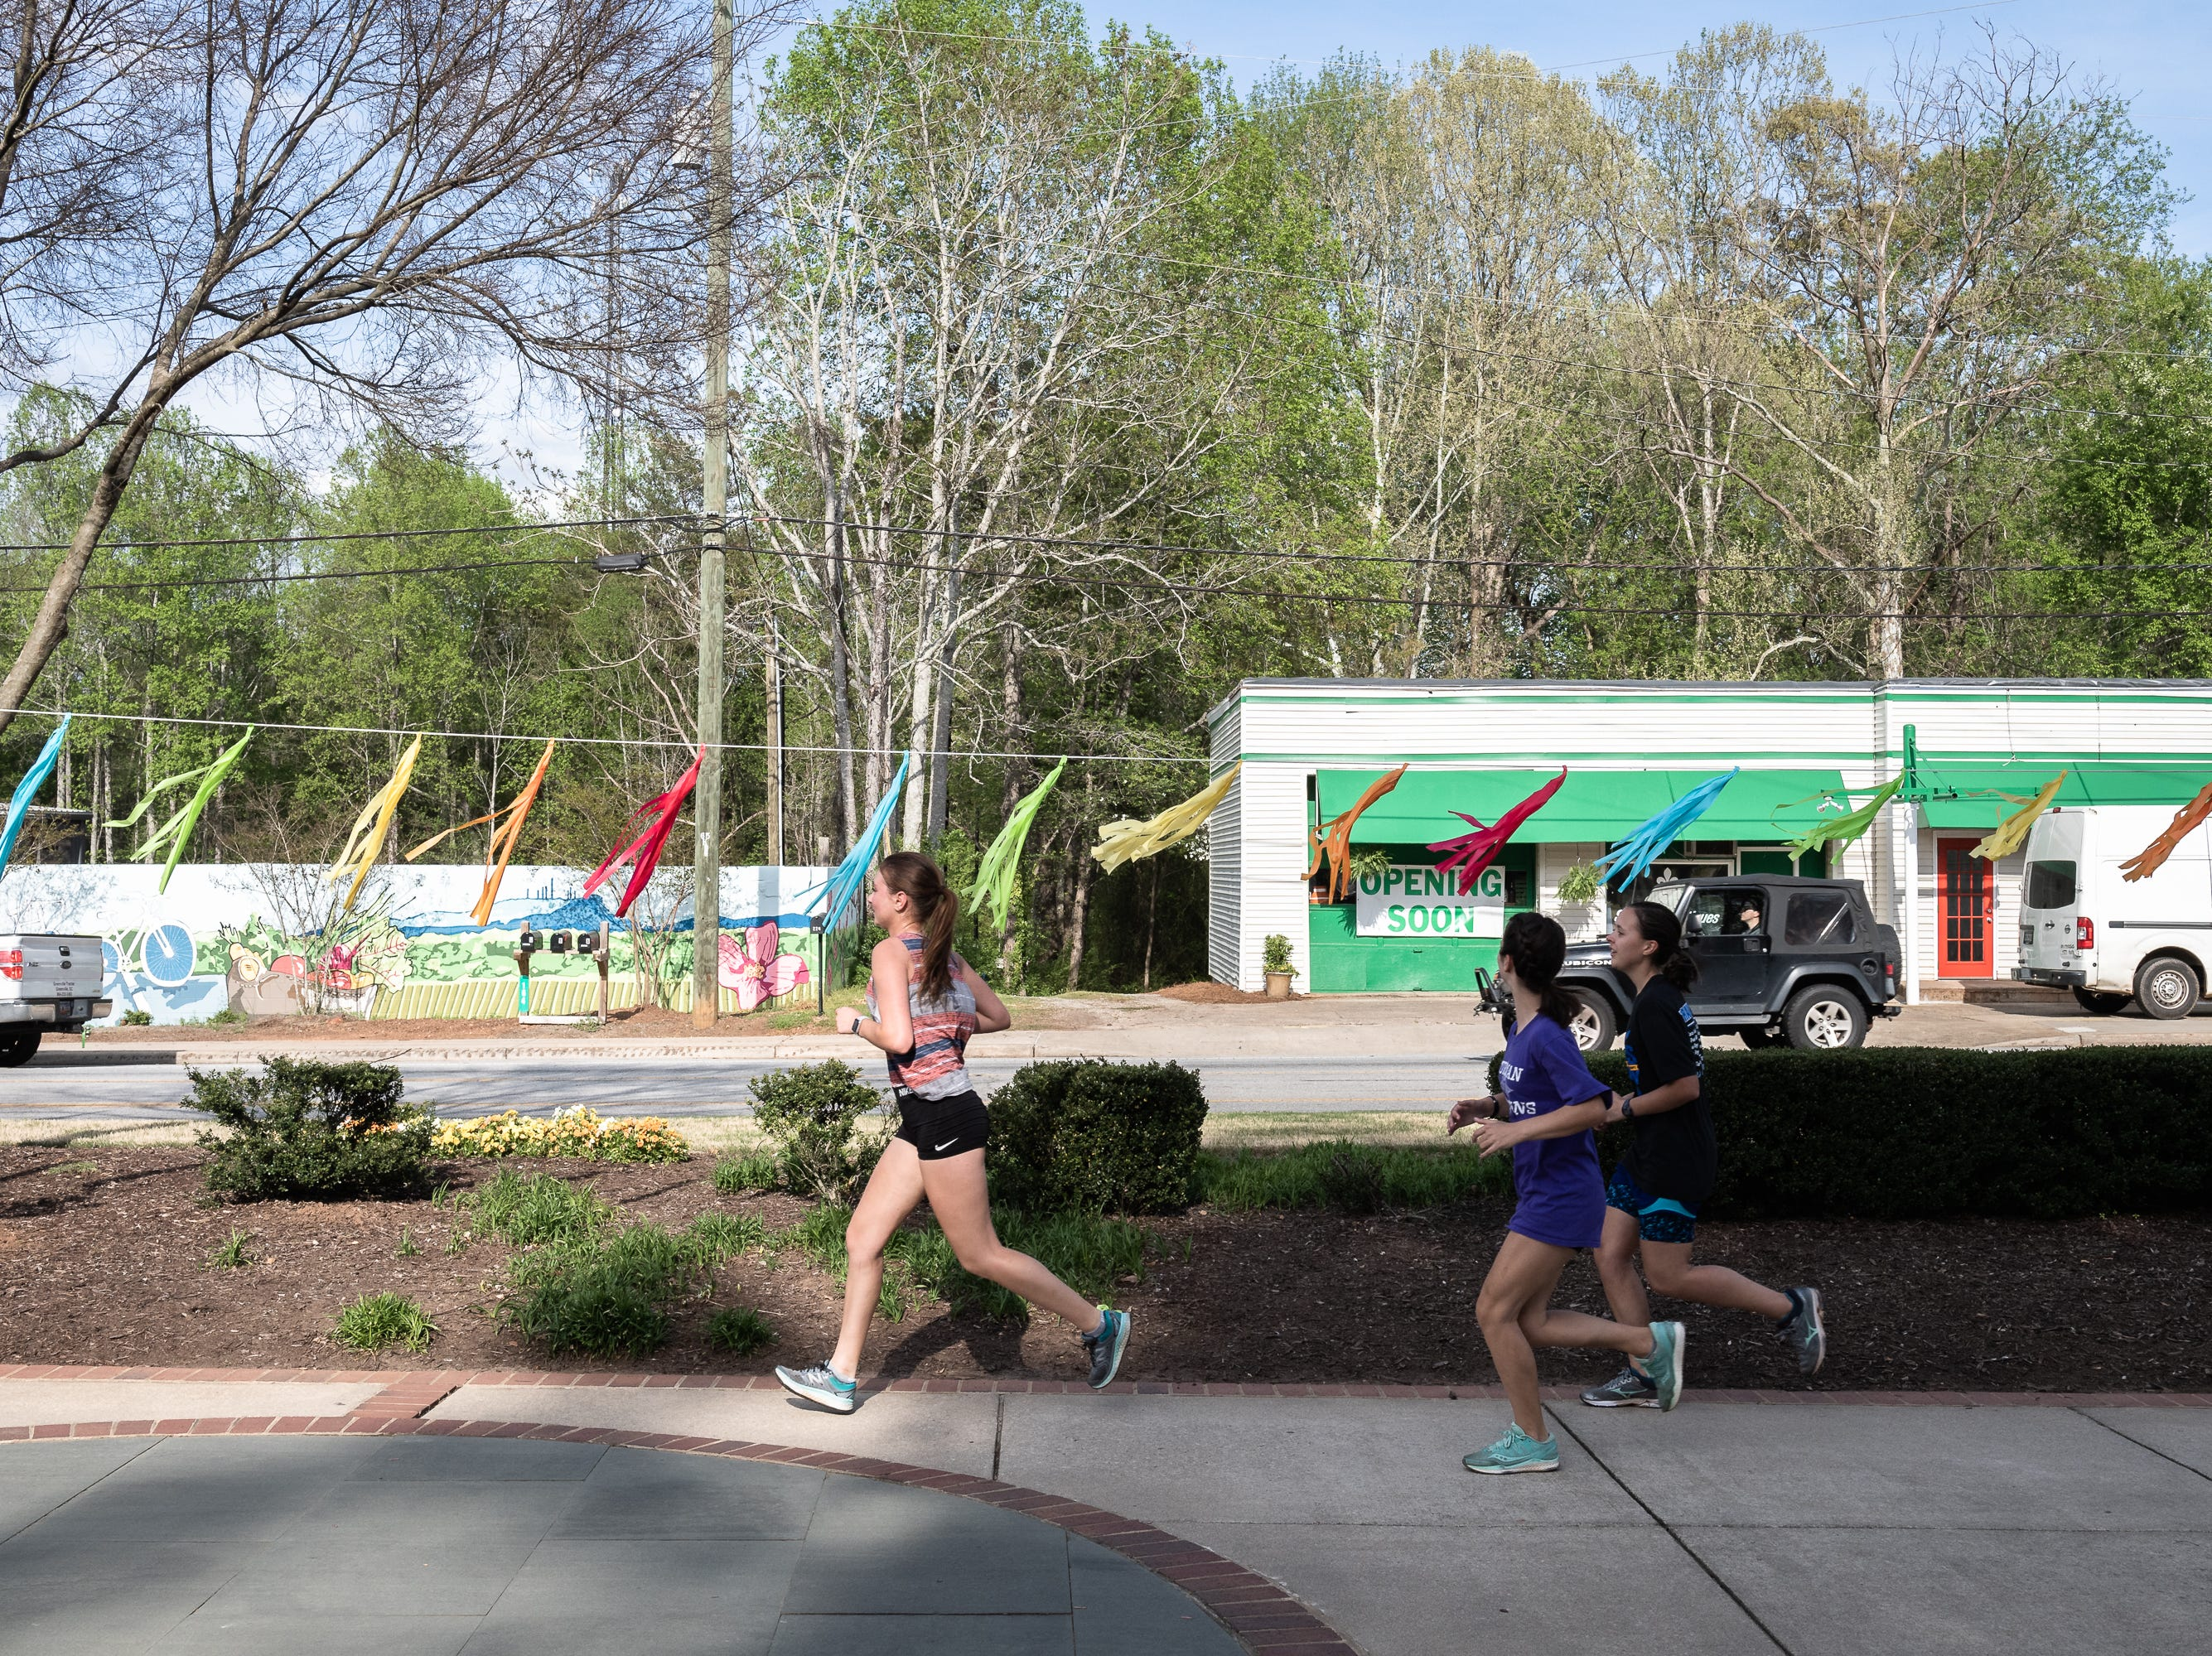 Runners on the Swamp Rabbit Trail on South Main Street in Travelers Rest Apr. 11, 2019.